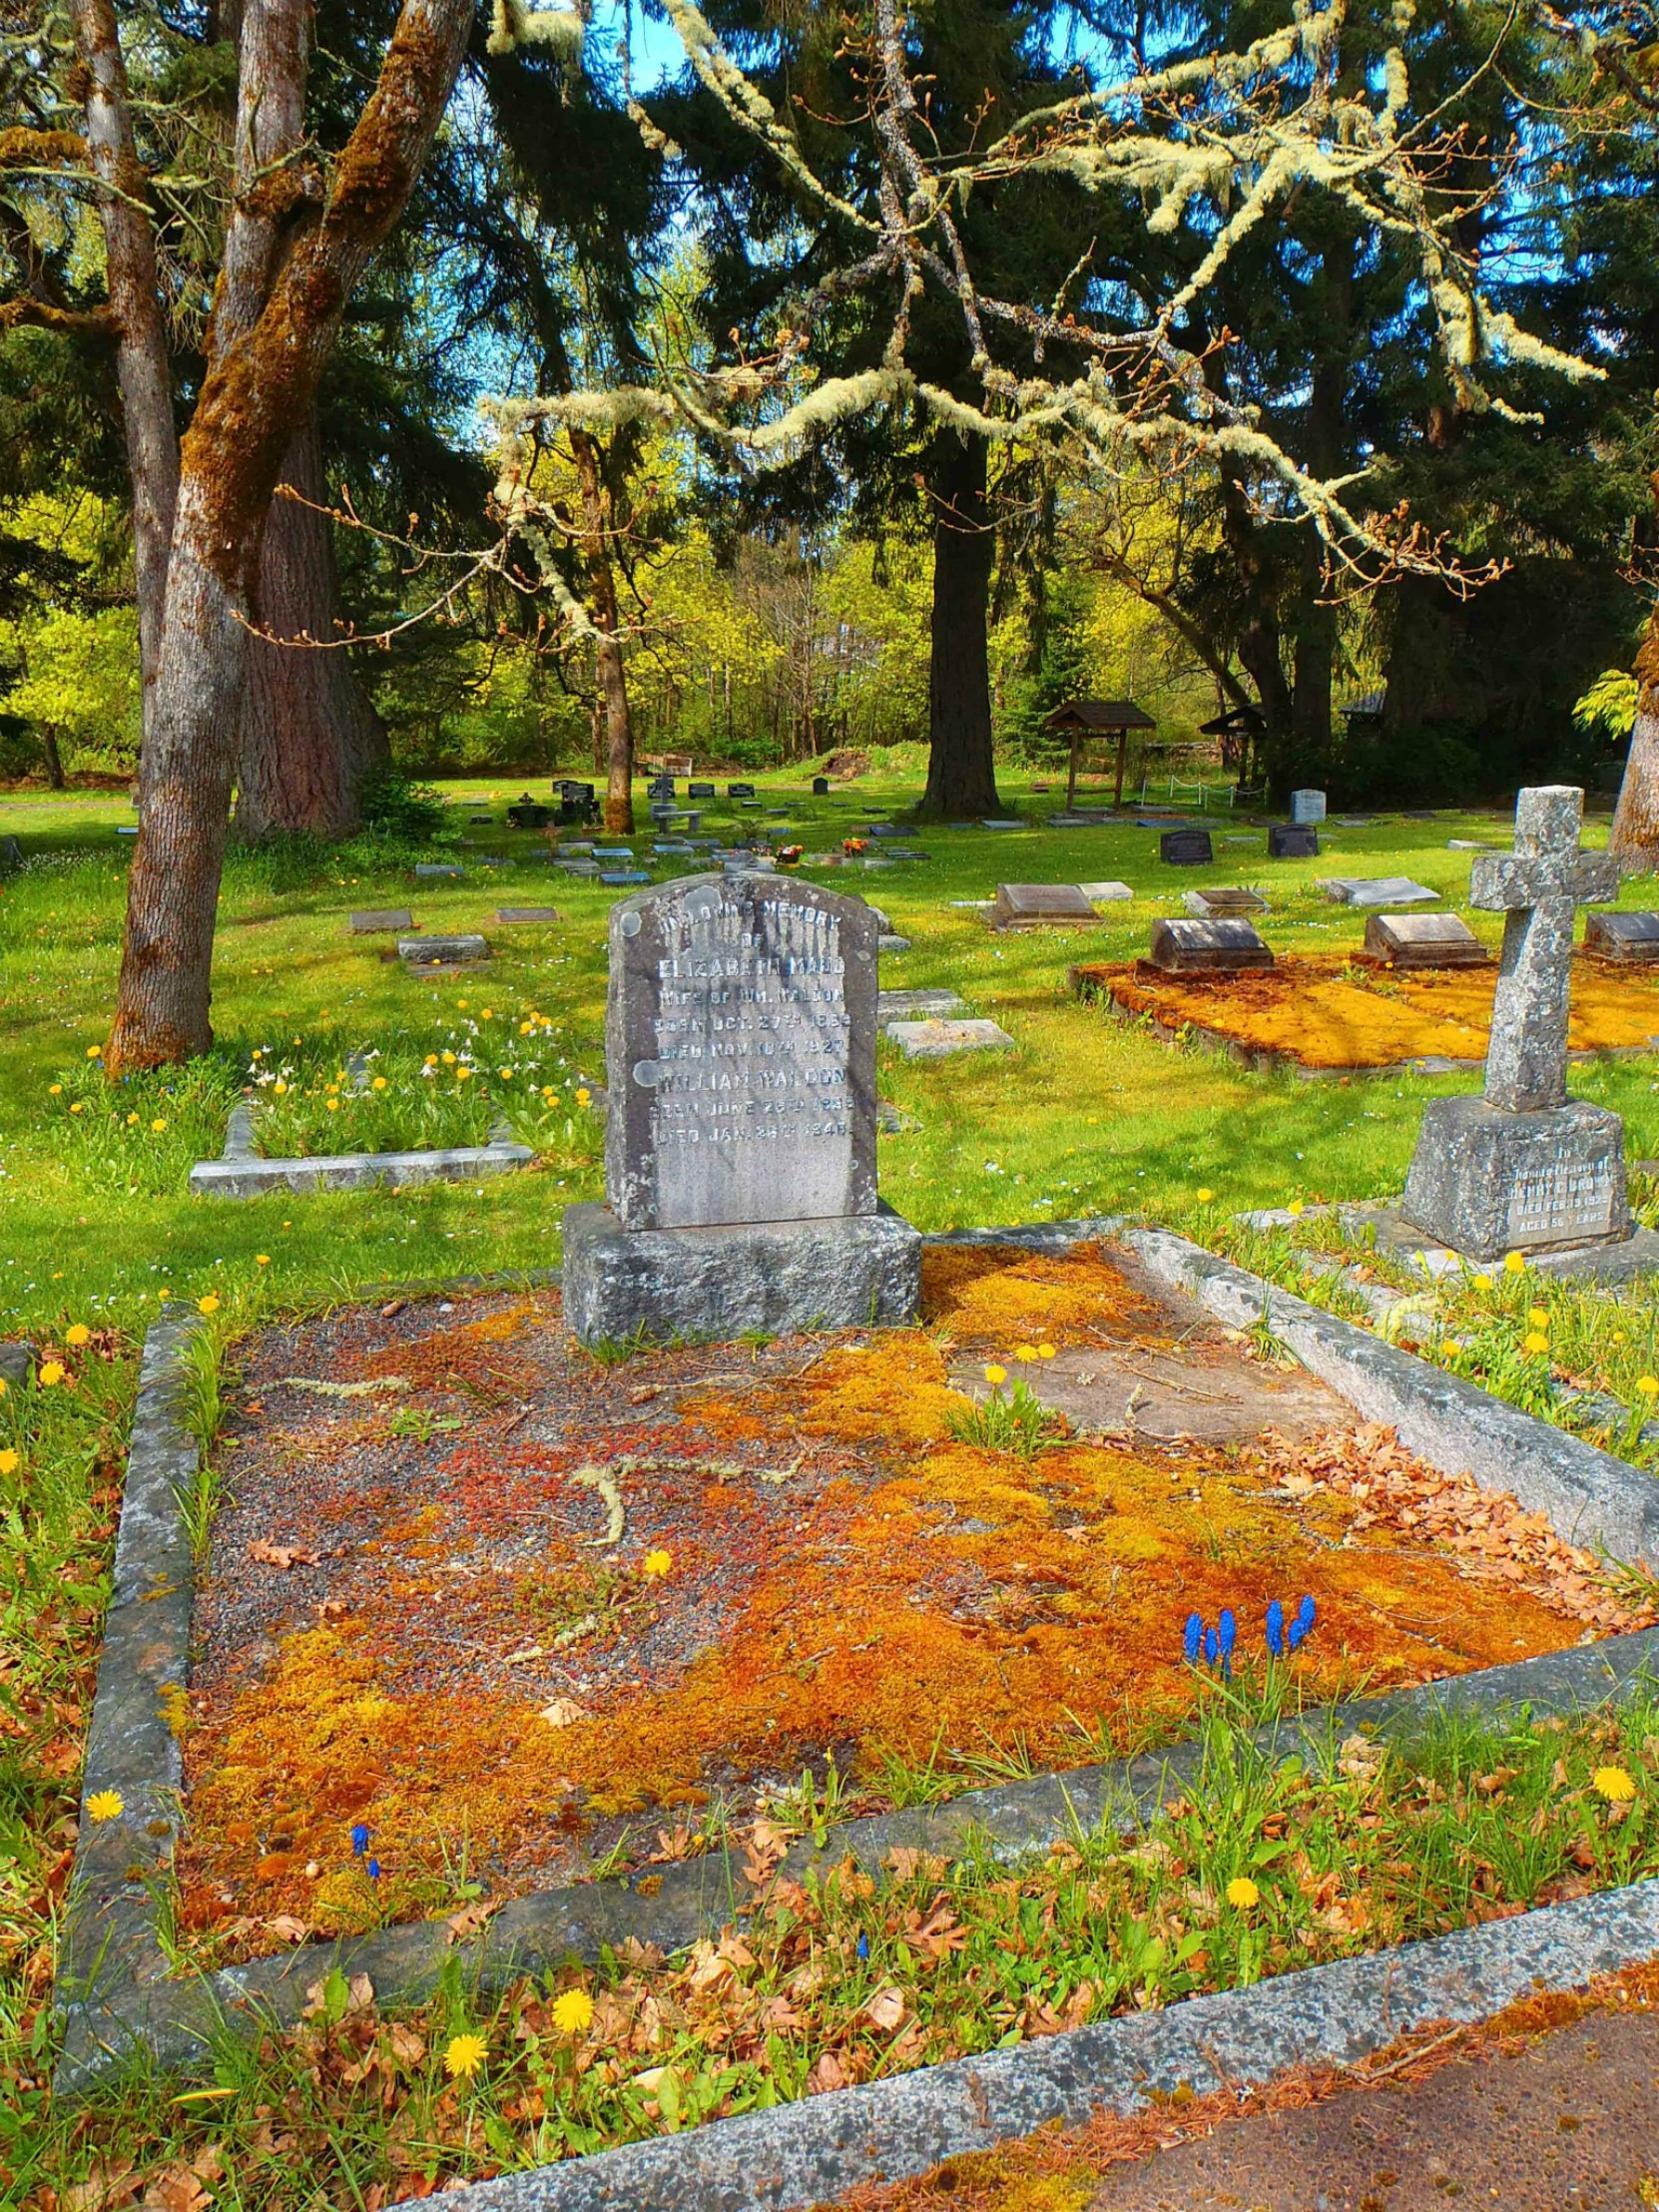 William Waldon grave, St. Peter's Quamichan cemetery, North Cowichan, B.C.